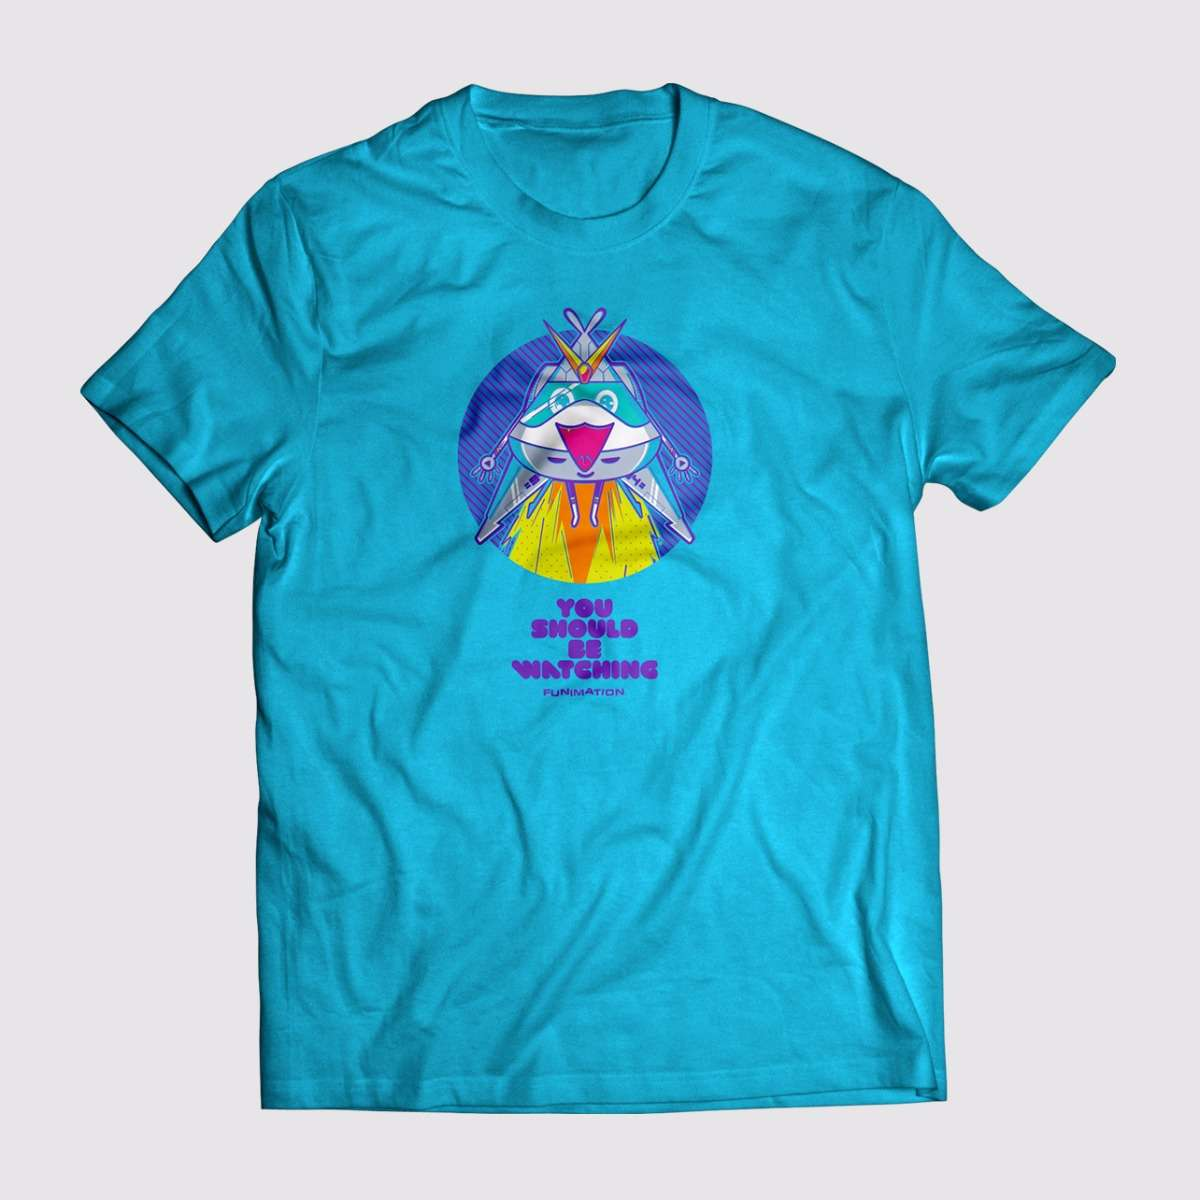 T-shirt Blue Apparel